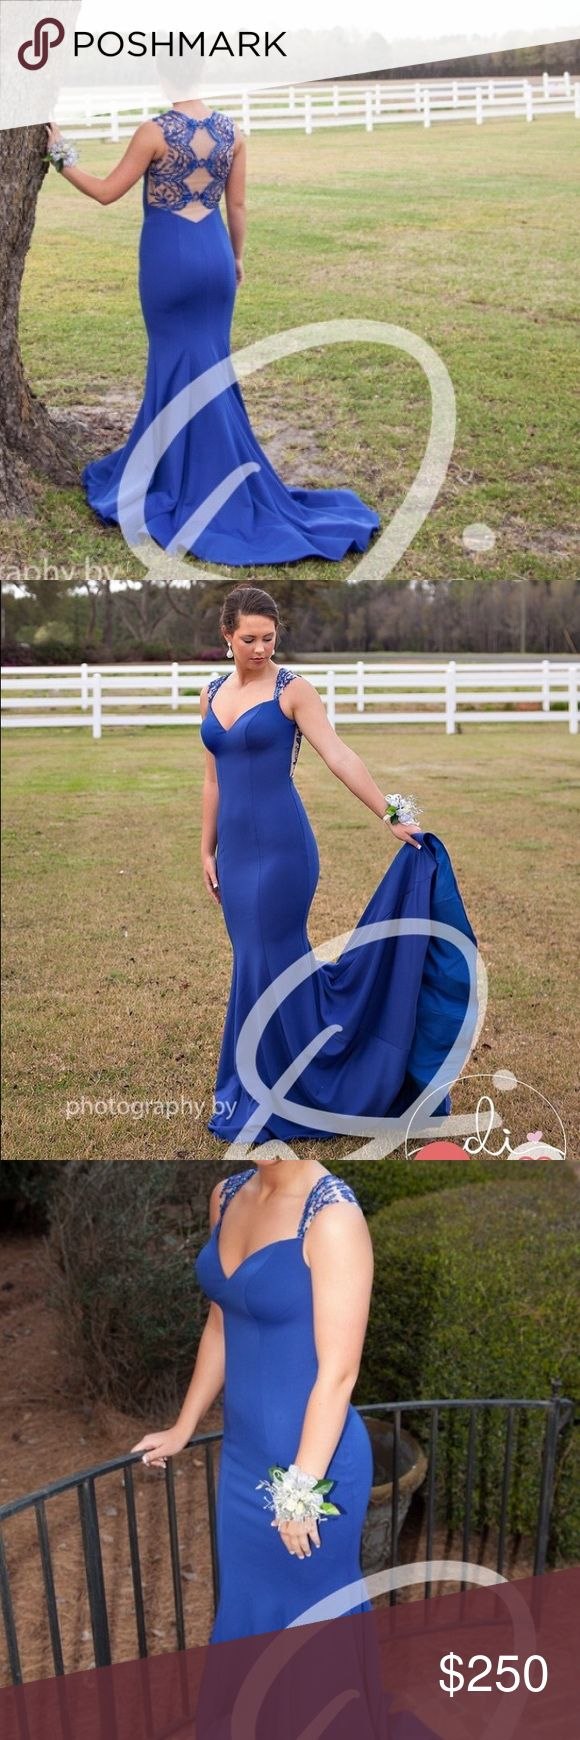 Sherri Hill blue prom dress Royal Blue Sherri Hill prom dress with beading on the back. Size 2 in great condition. Worn once! Price negotiable. Sherri Hill Dresses Prom